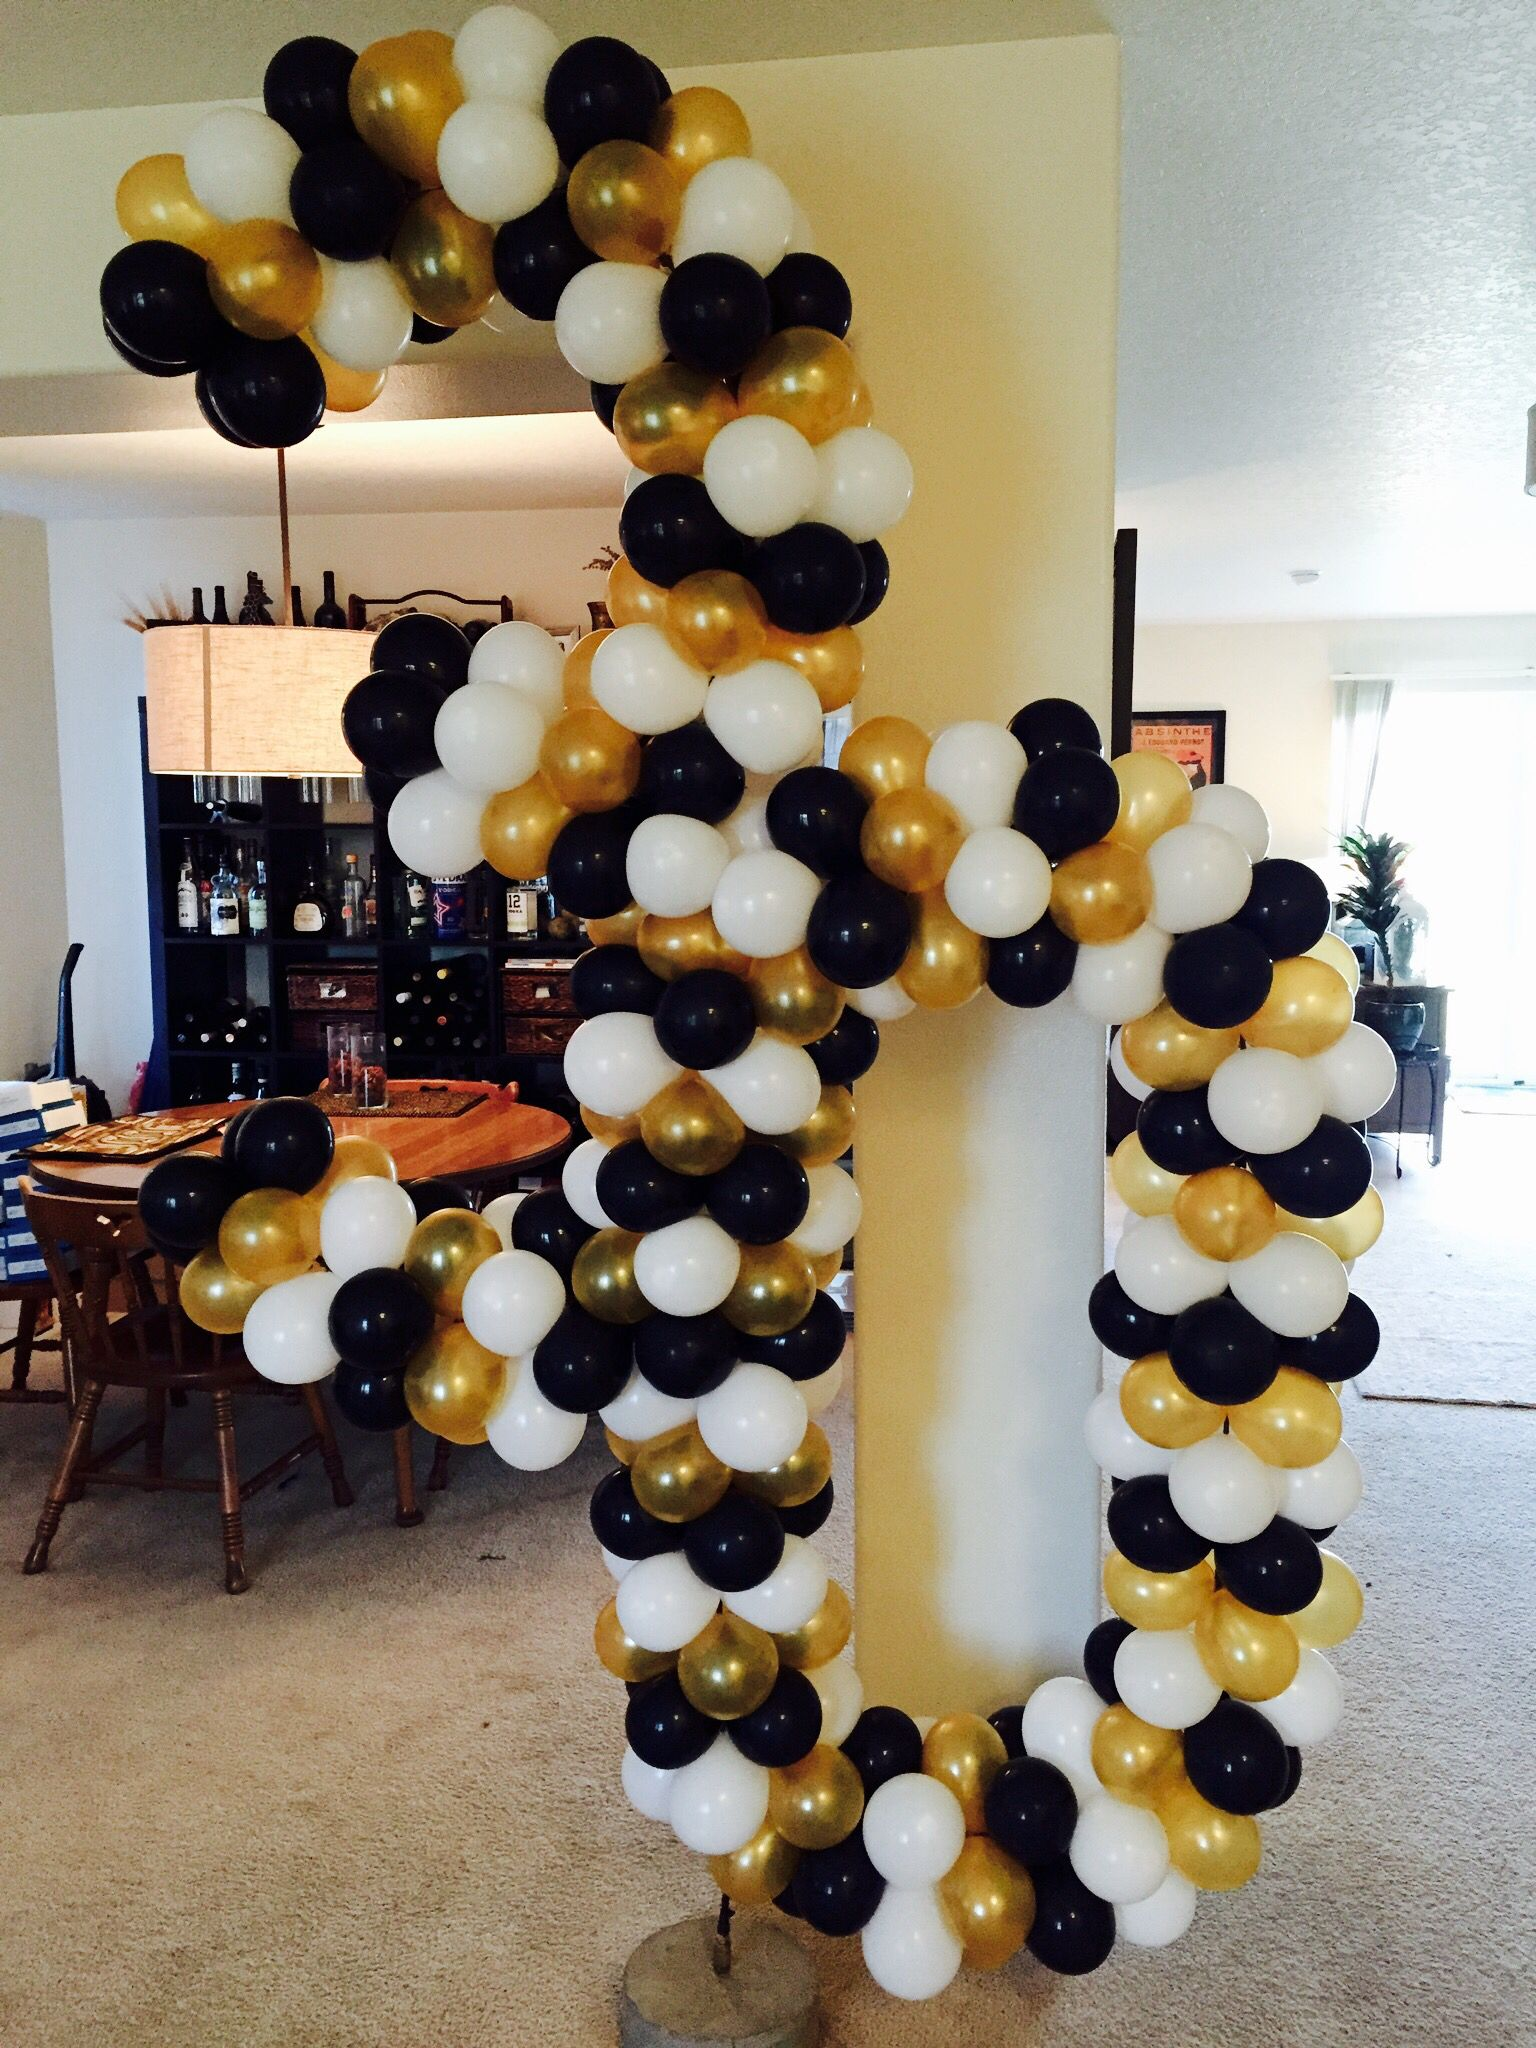 30th birthday balloons. Gold, black and white. 30th